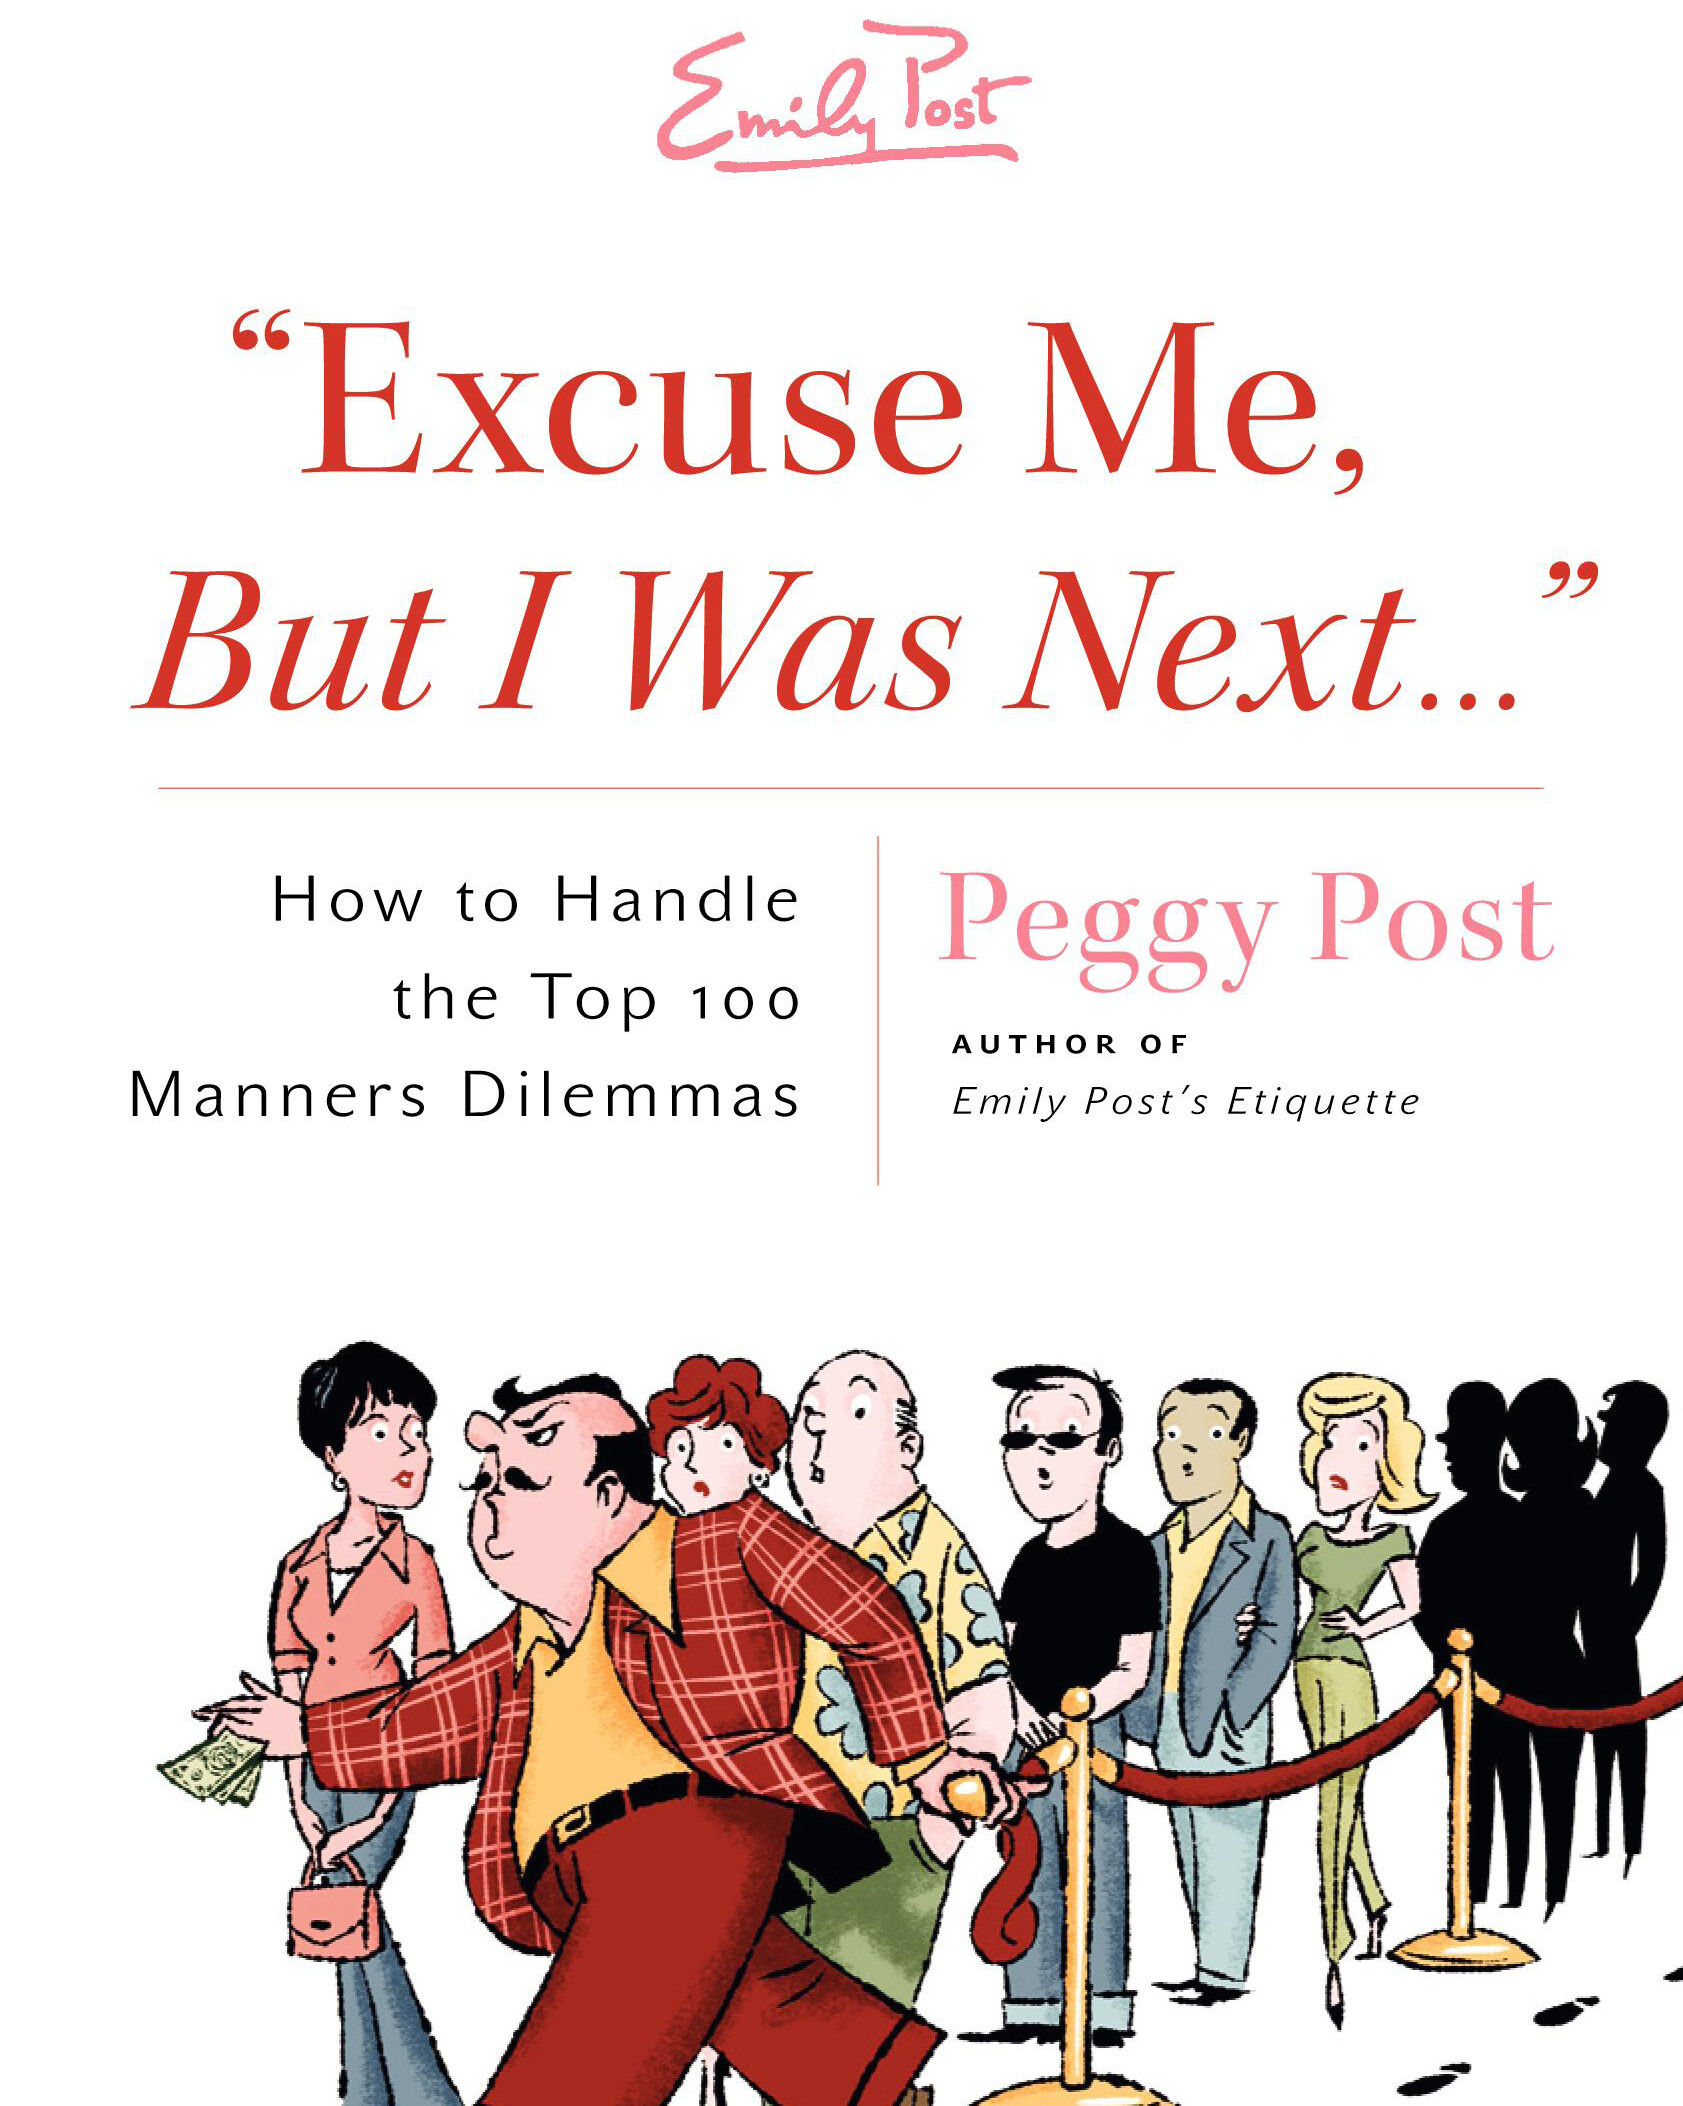 cover image of Emily POst's Excuse Me But I was Next showing title over an illustration of someone cutting a rope line while those standing in line watch in disbelief